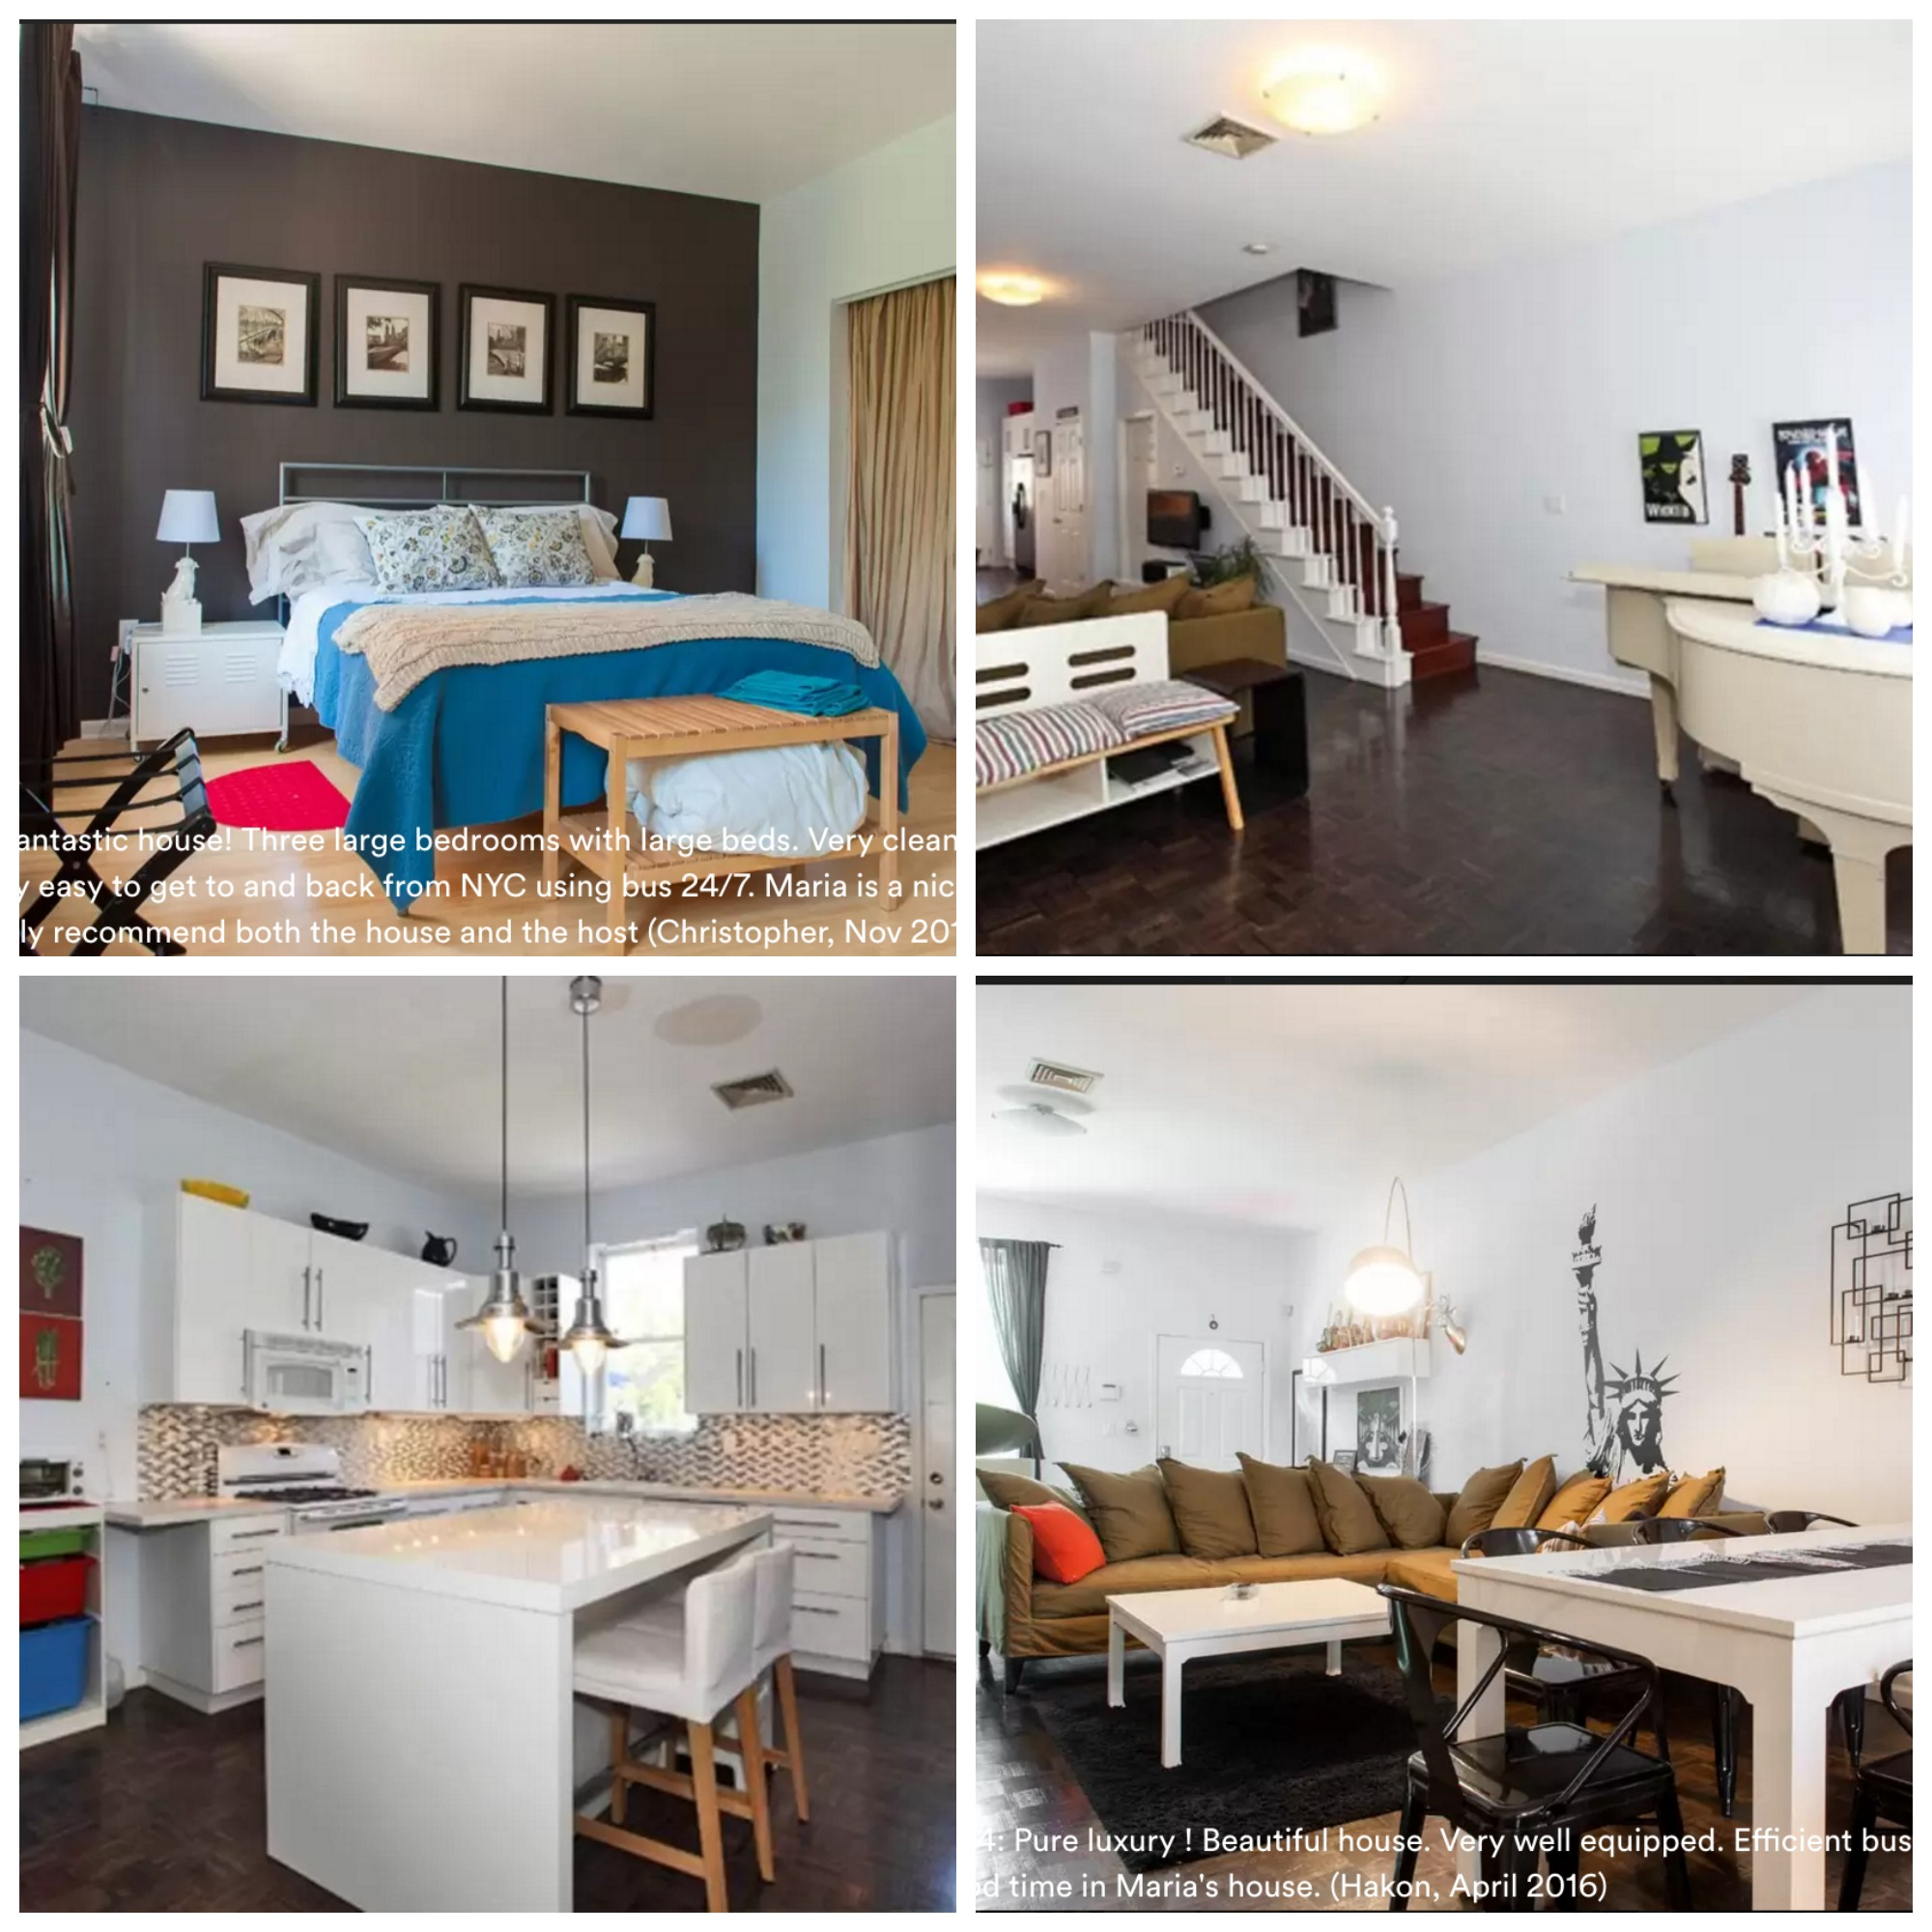 https://www.airbnb.be/rooms/661367